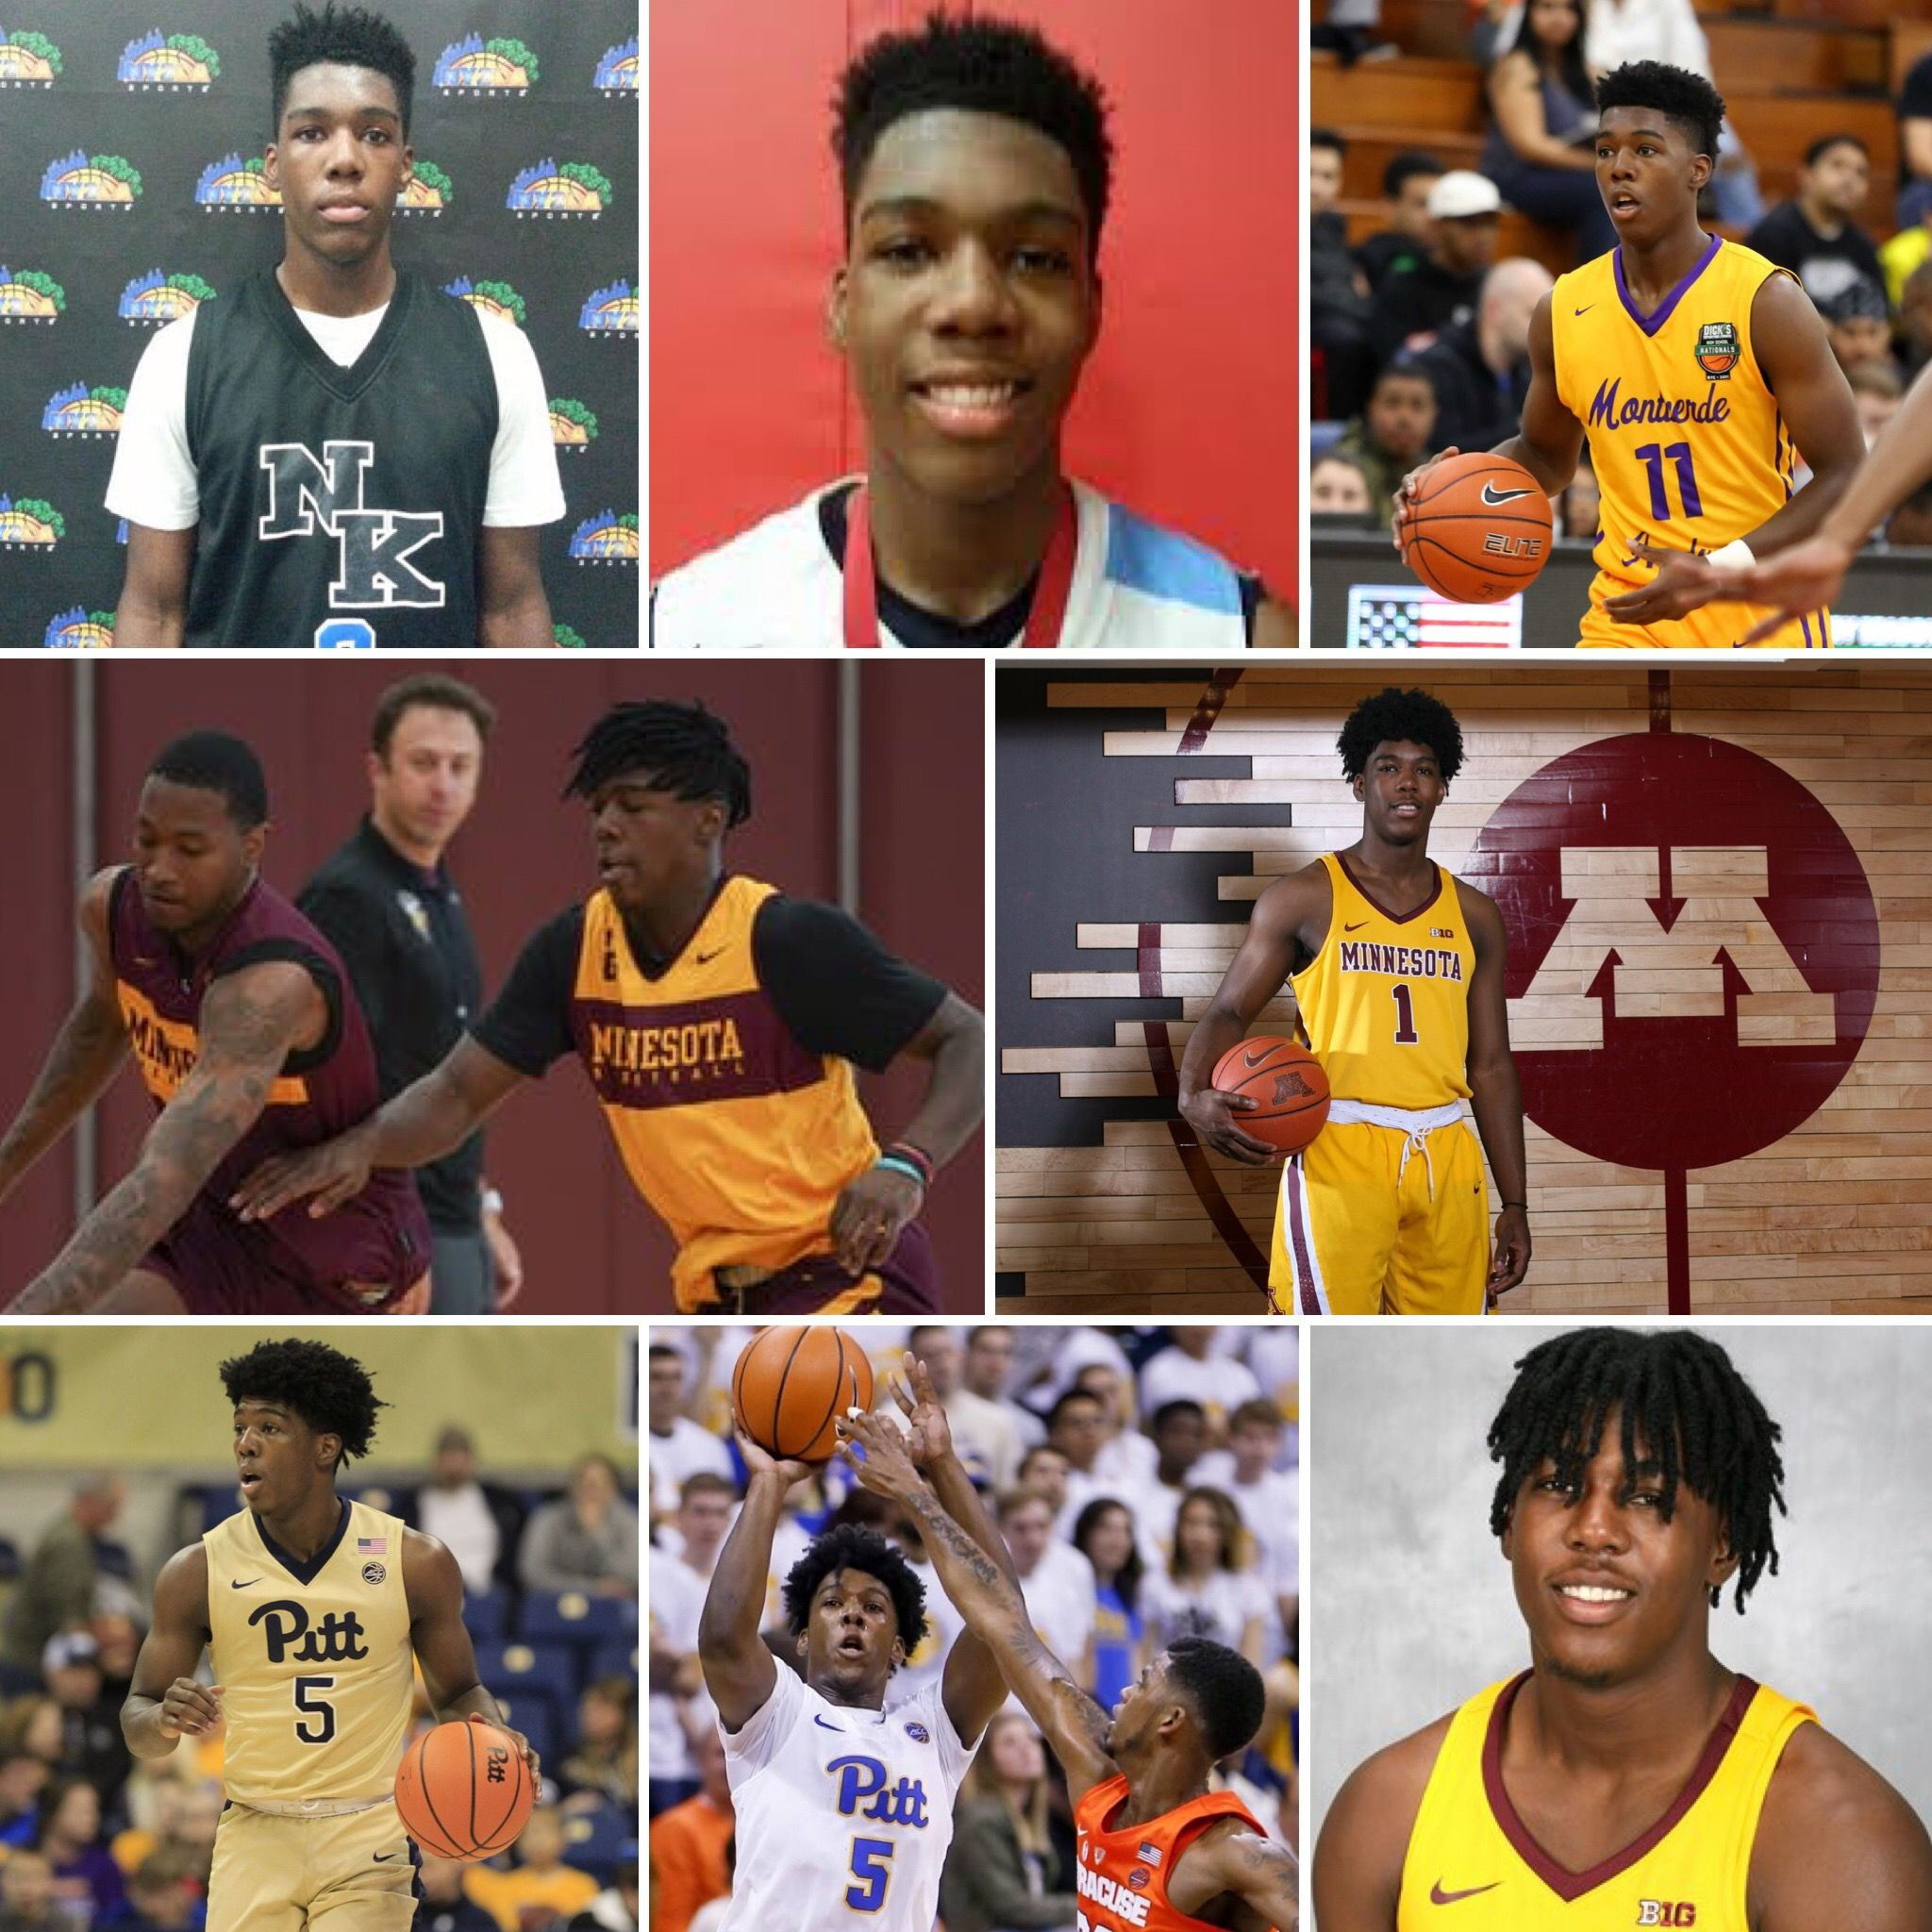 Happy Birthday To Current Gopher Marcus Carr Learn More About Our New Point Guard From His Gophers Sports Profil Gopher Sports Sports Baseball Cards